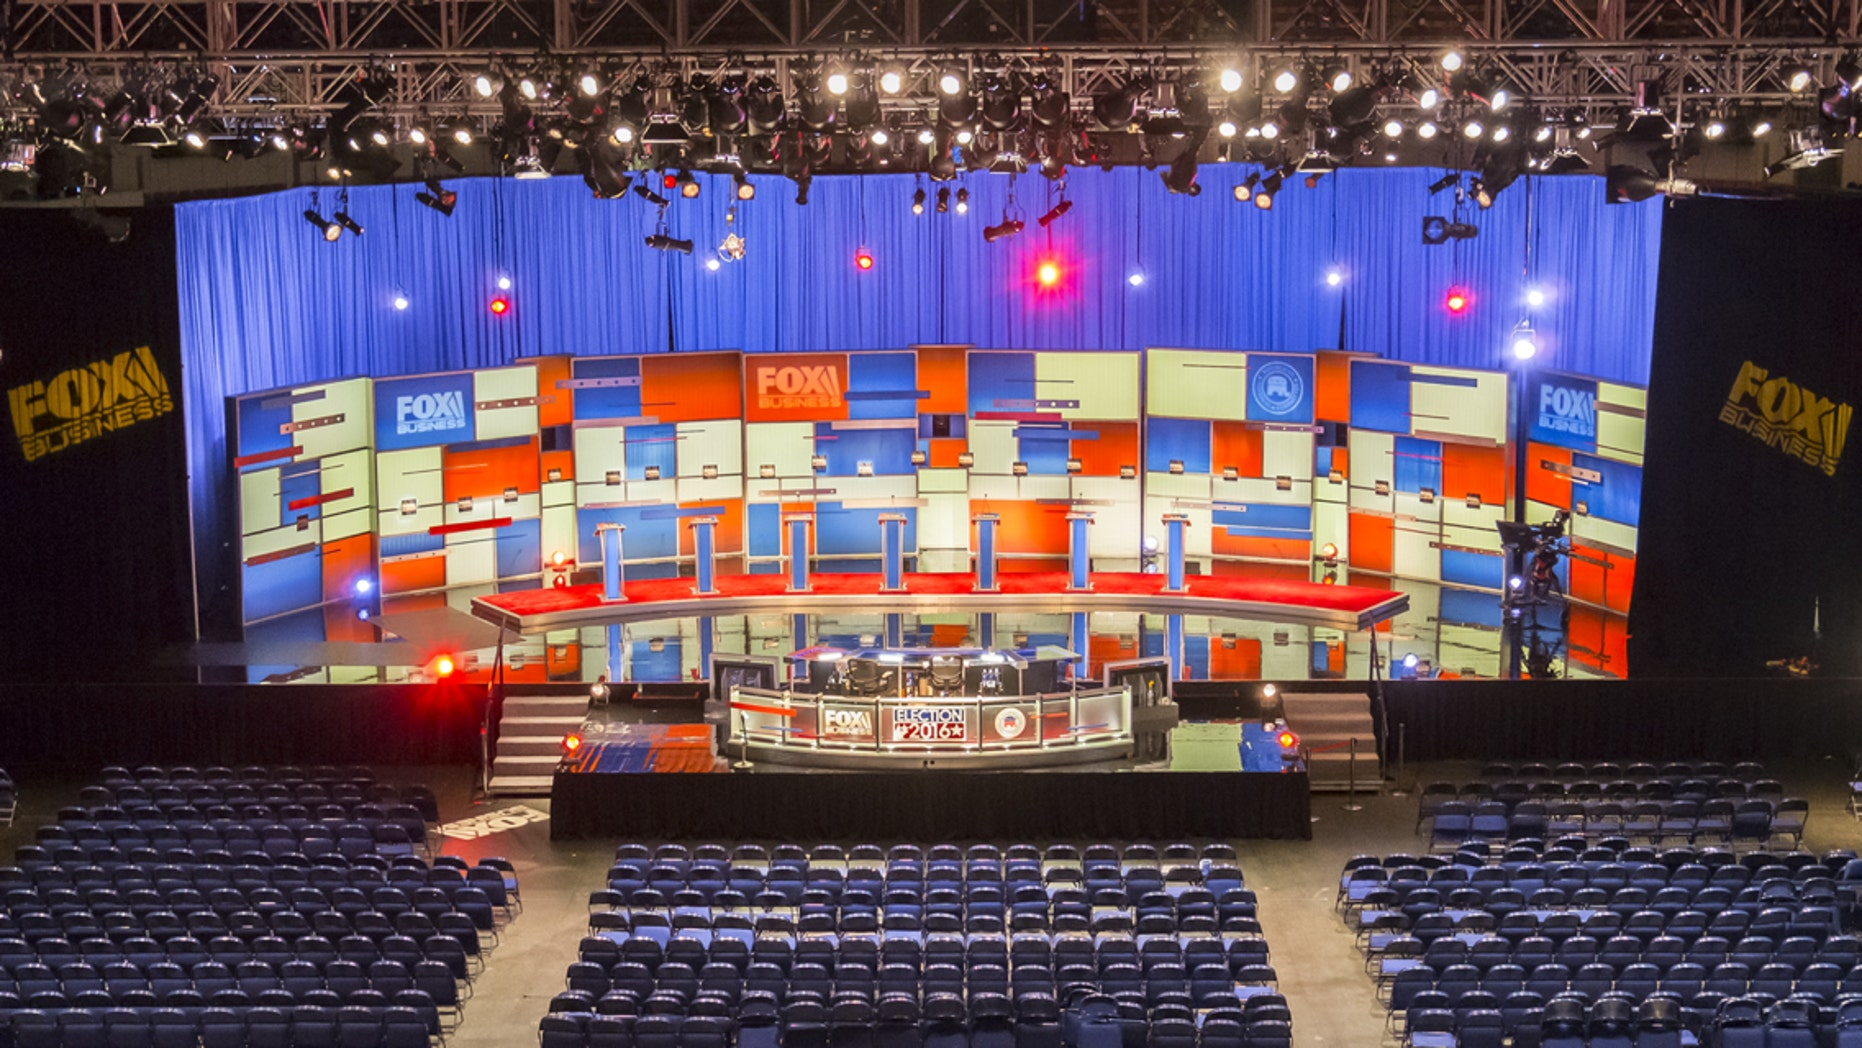 The stage is set for the Fox Business 2016 Republican presidential primary debate in North Charleston, S.C.